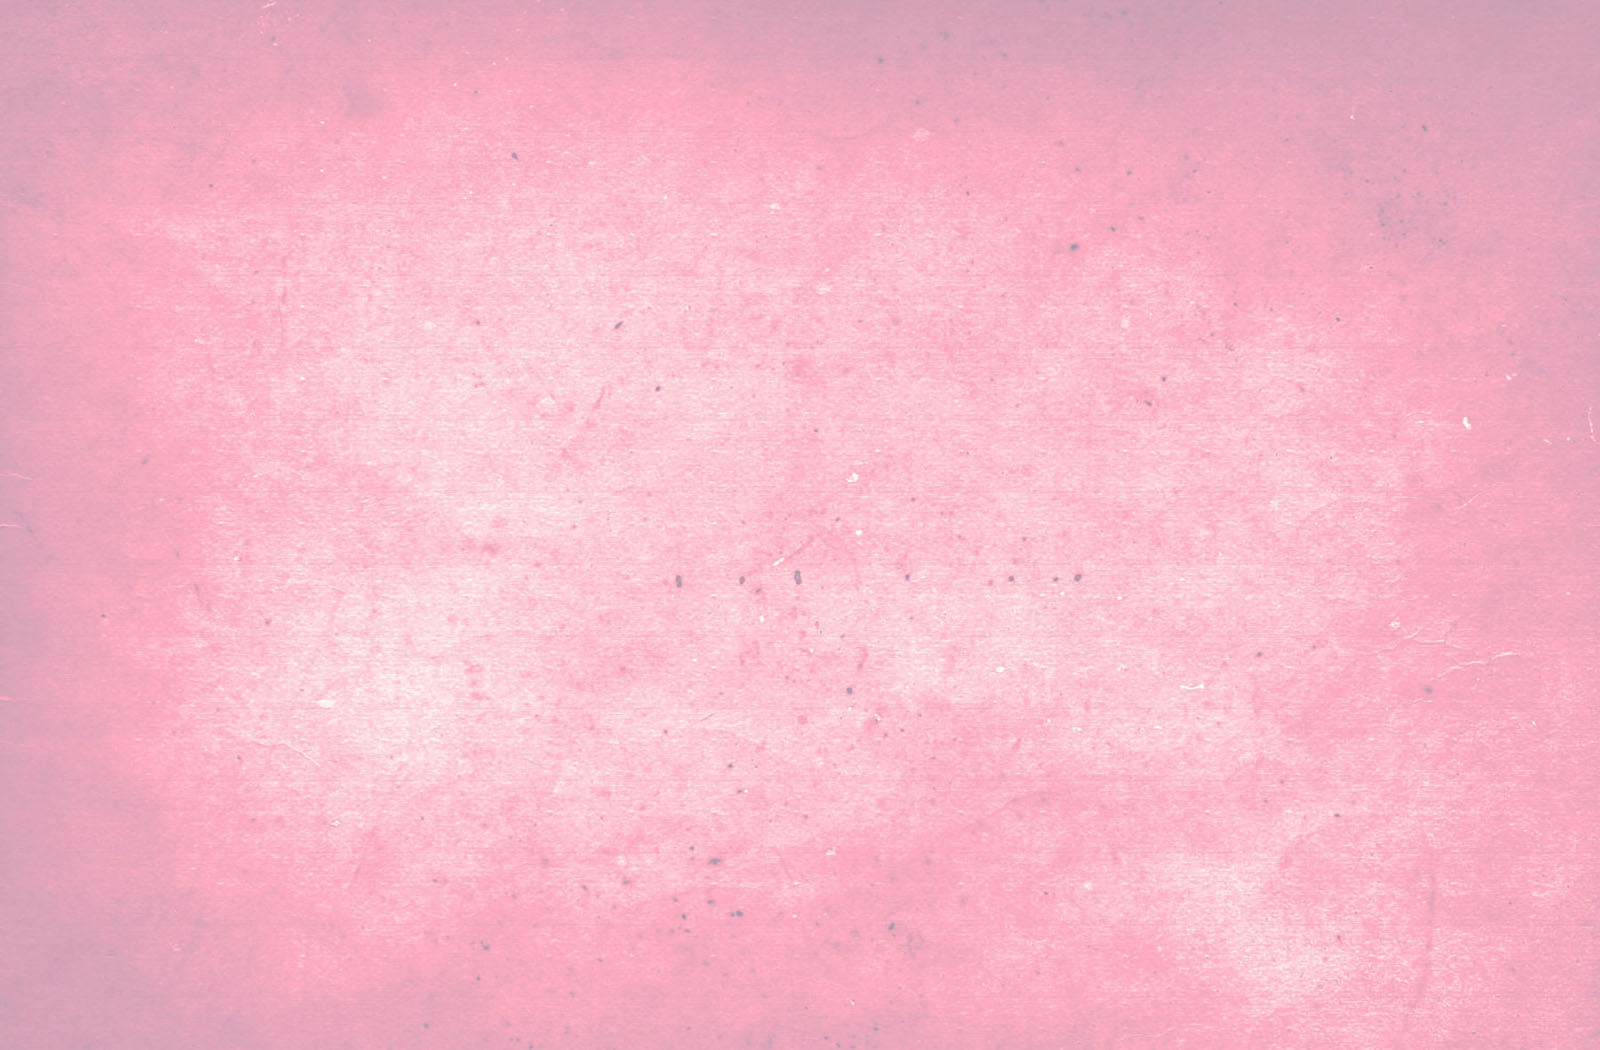 12 Free Tumblr Backgrounds in Colors | ibjennyjenny ...